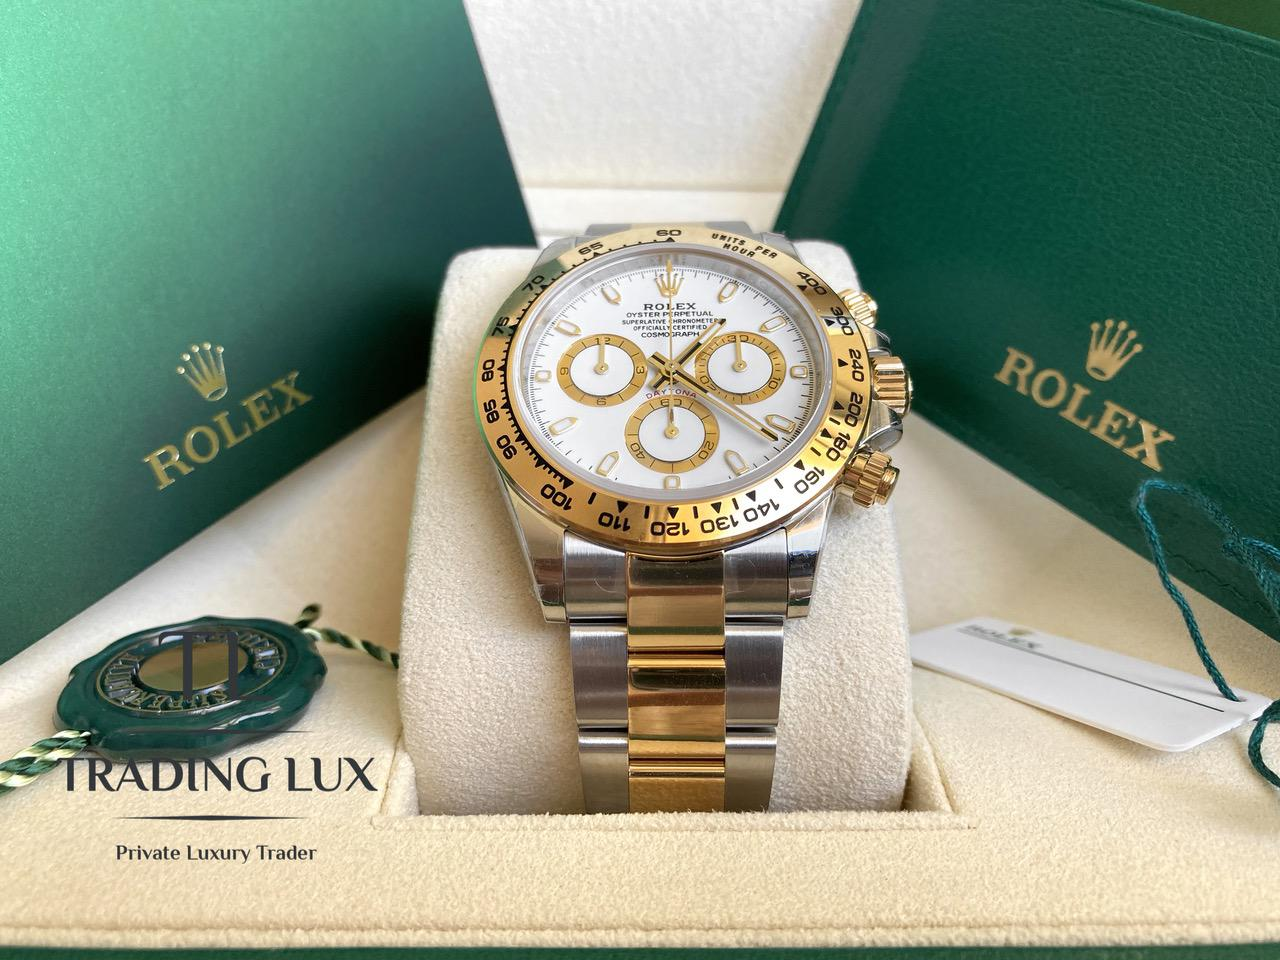 Rolex-Daytona-116503-Gold-Steel-12-1